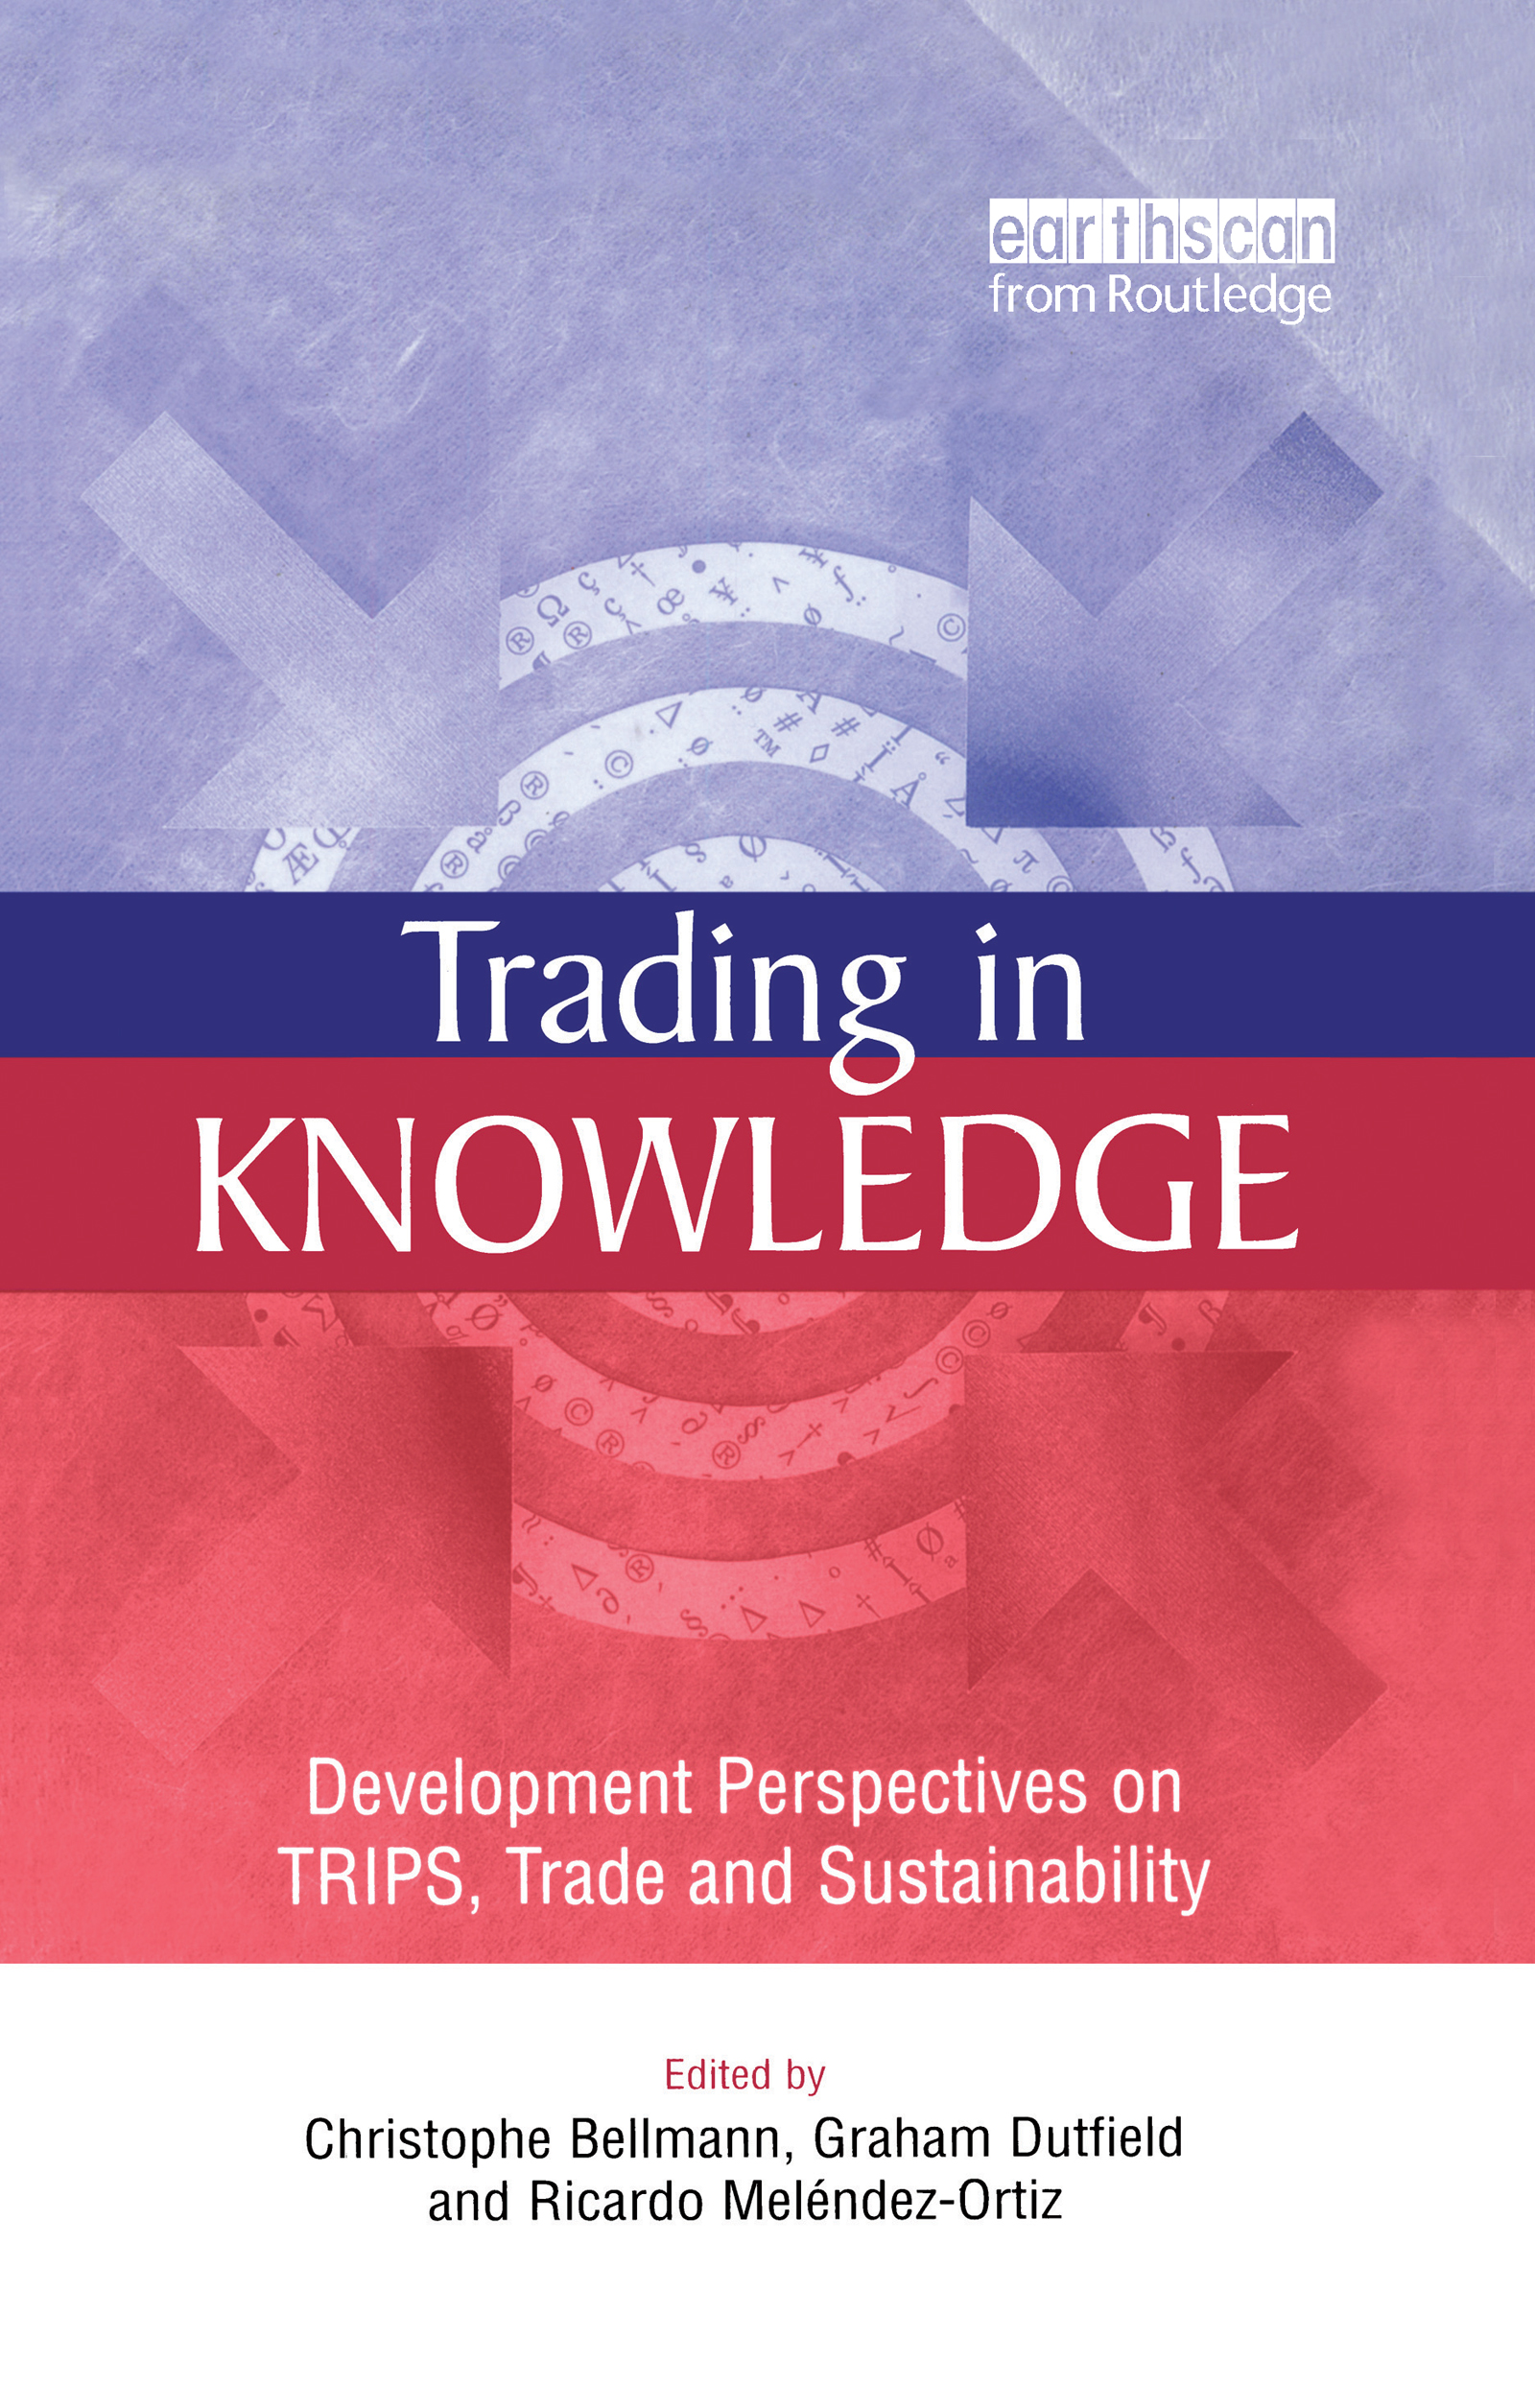 Trading in Knowledge: Development Perspectives on TRIPS, Trade and Sustainability book cover